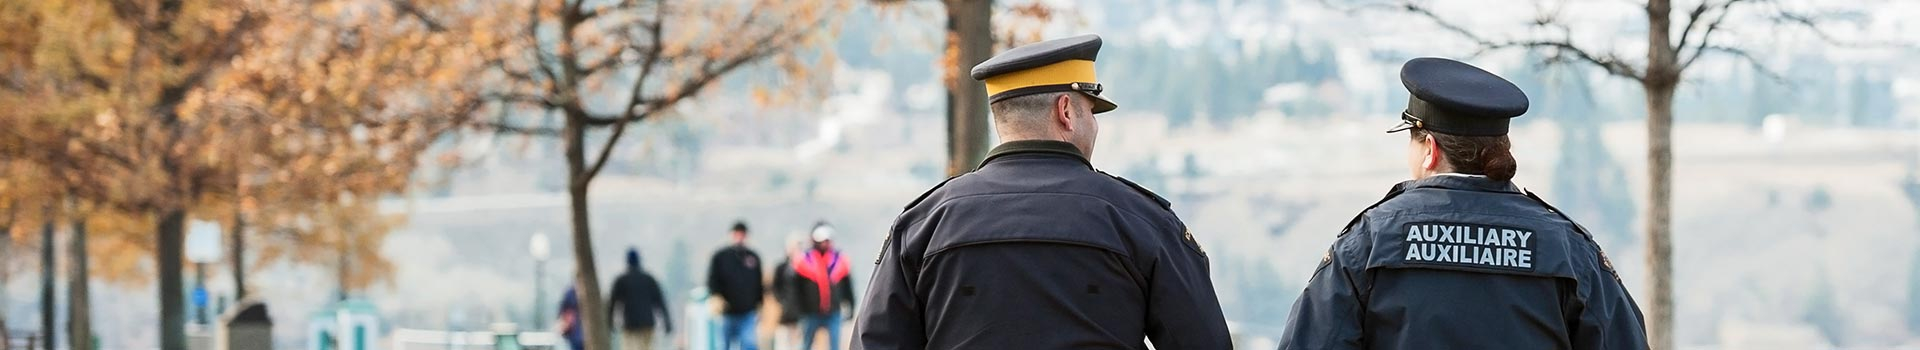 Kelowna Police officers on patrol